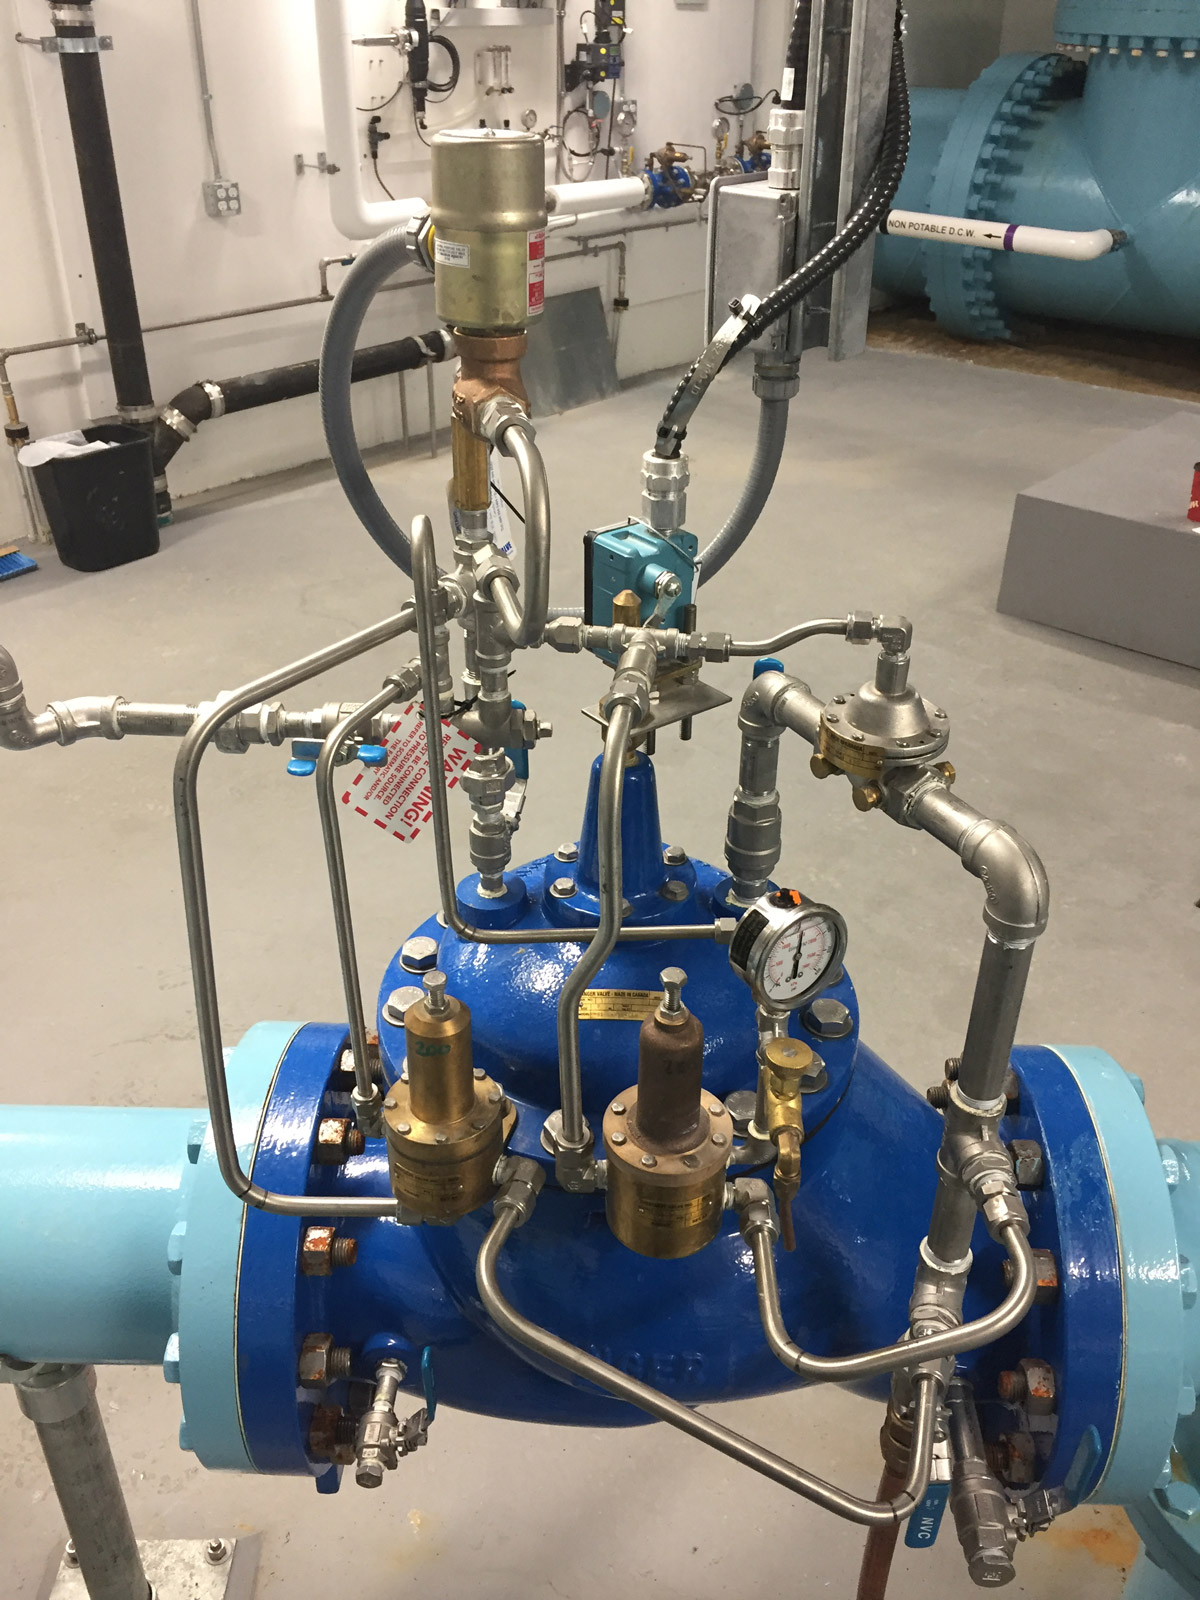 In-field valve and control system designed by Mearl's Machine Works